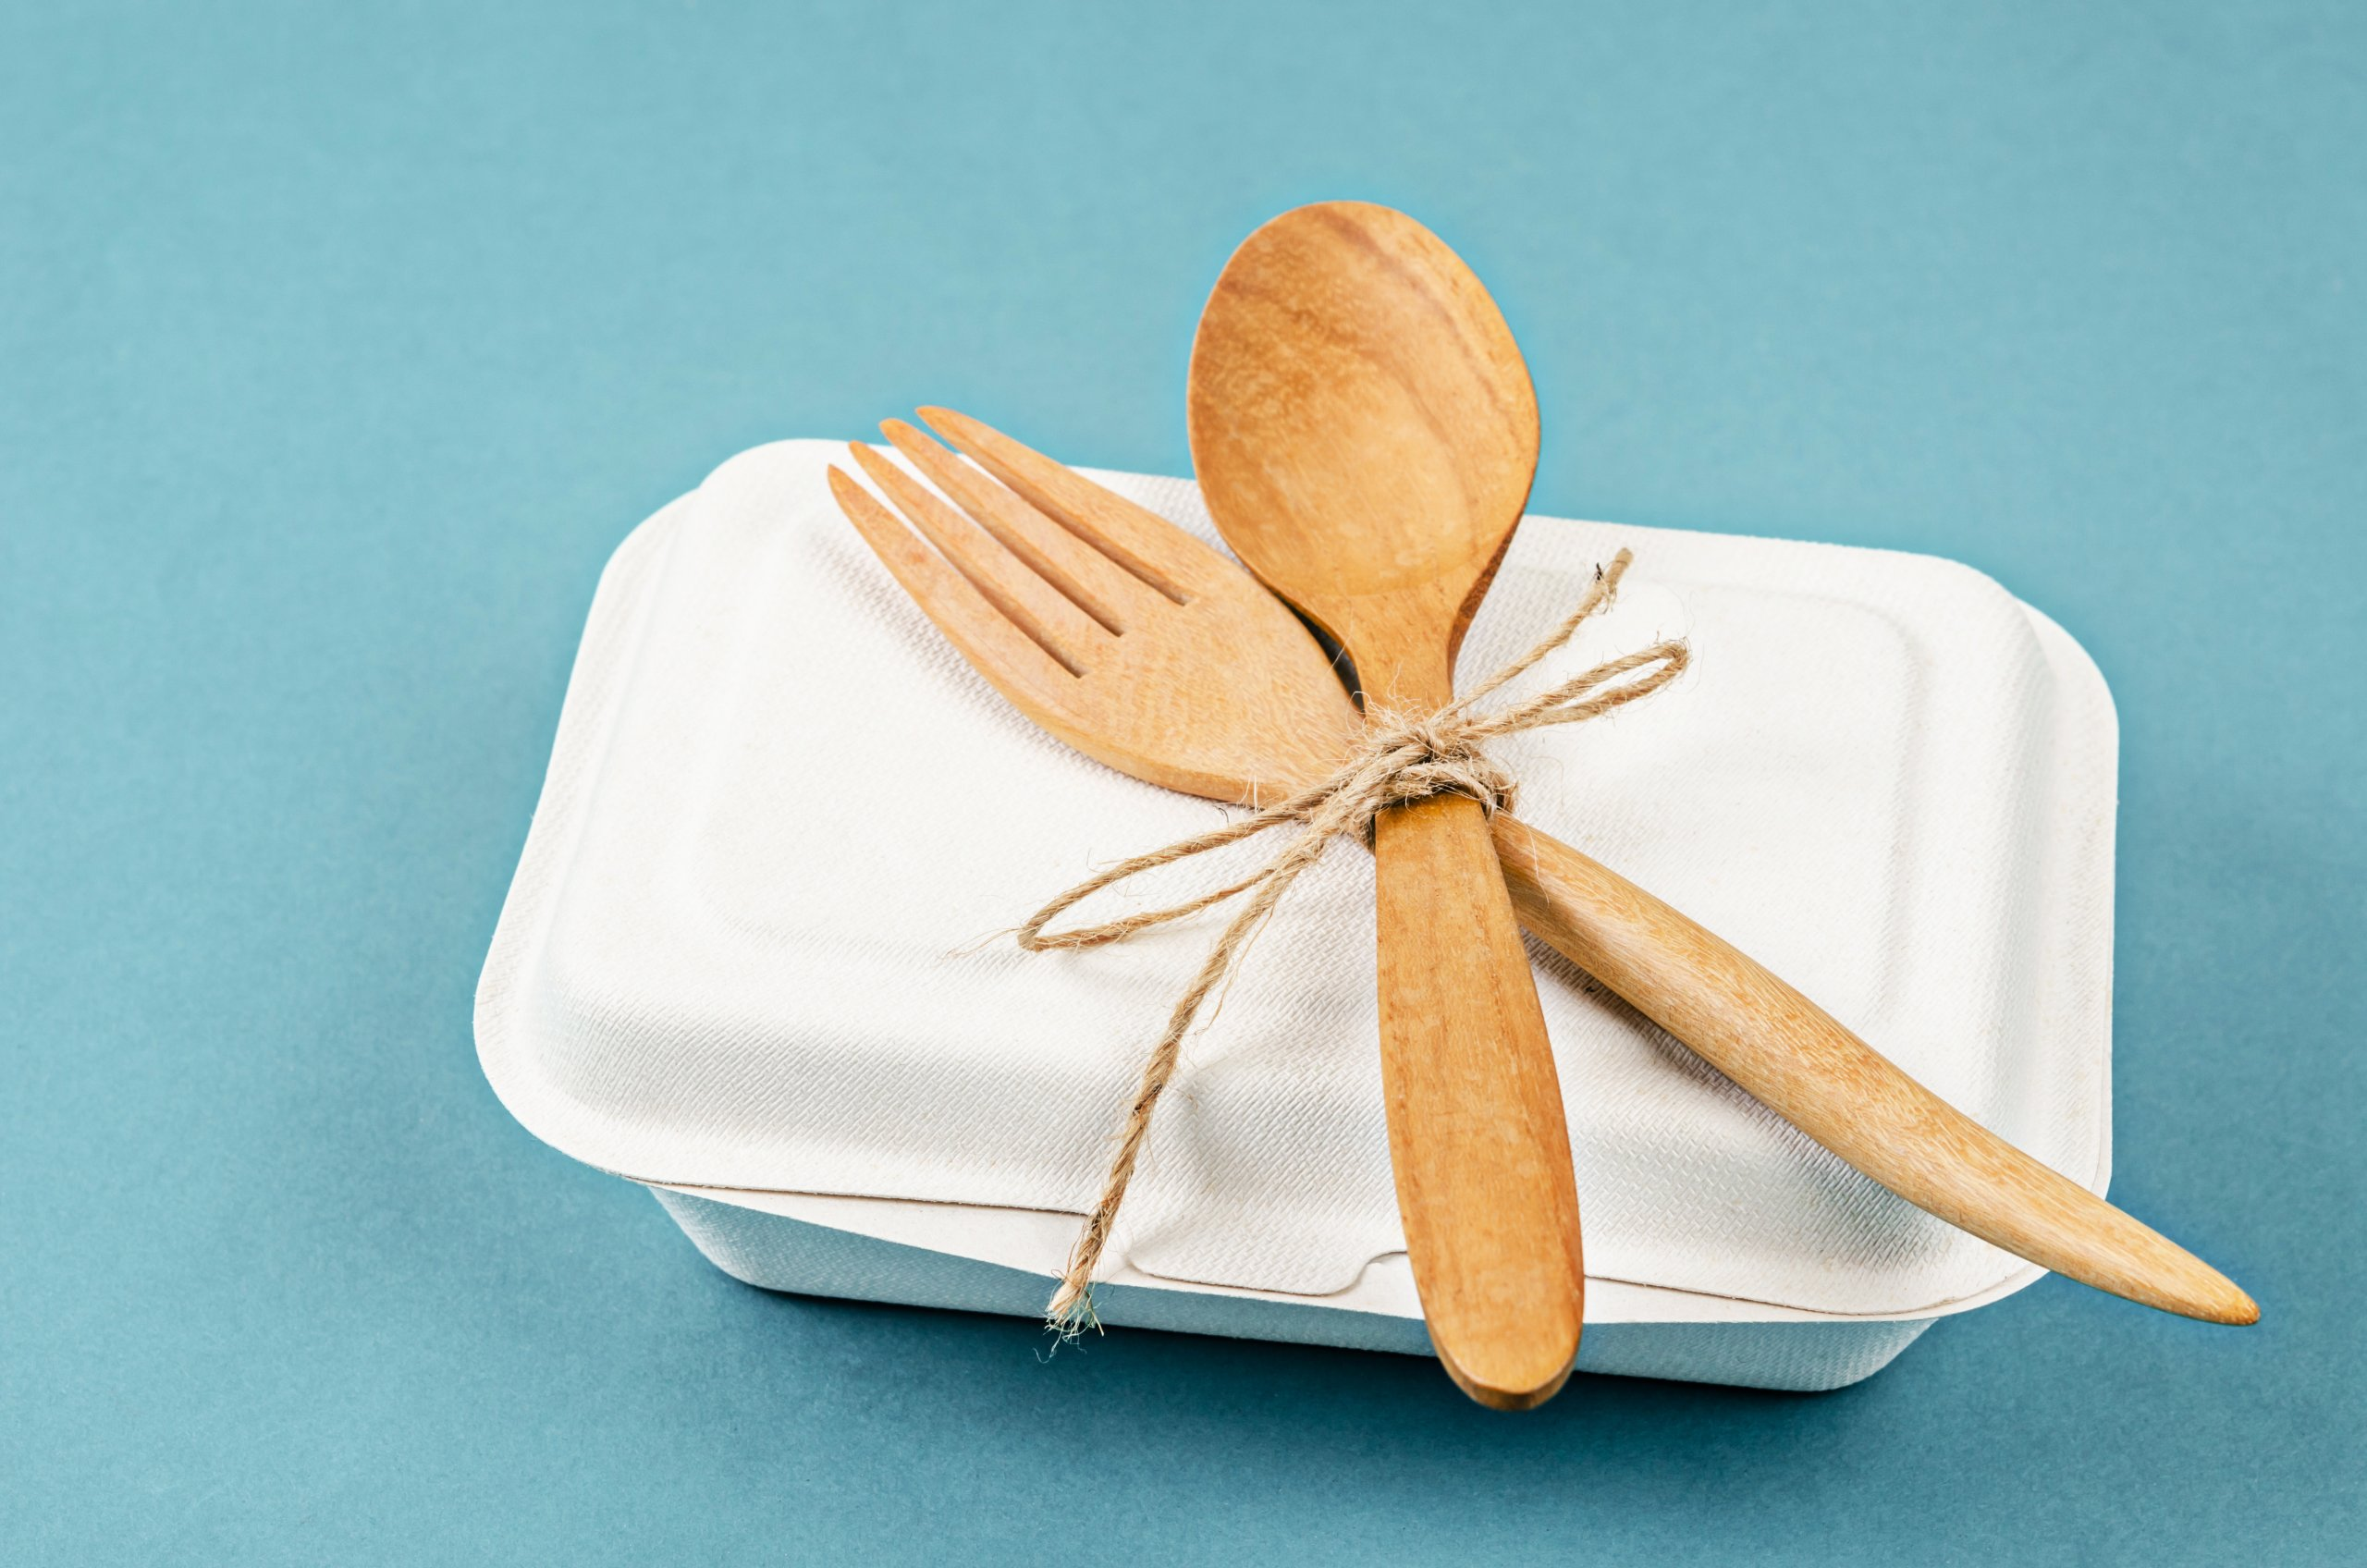 Biodegradable food box with wooden spoon